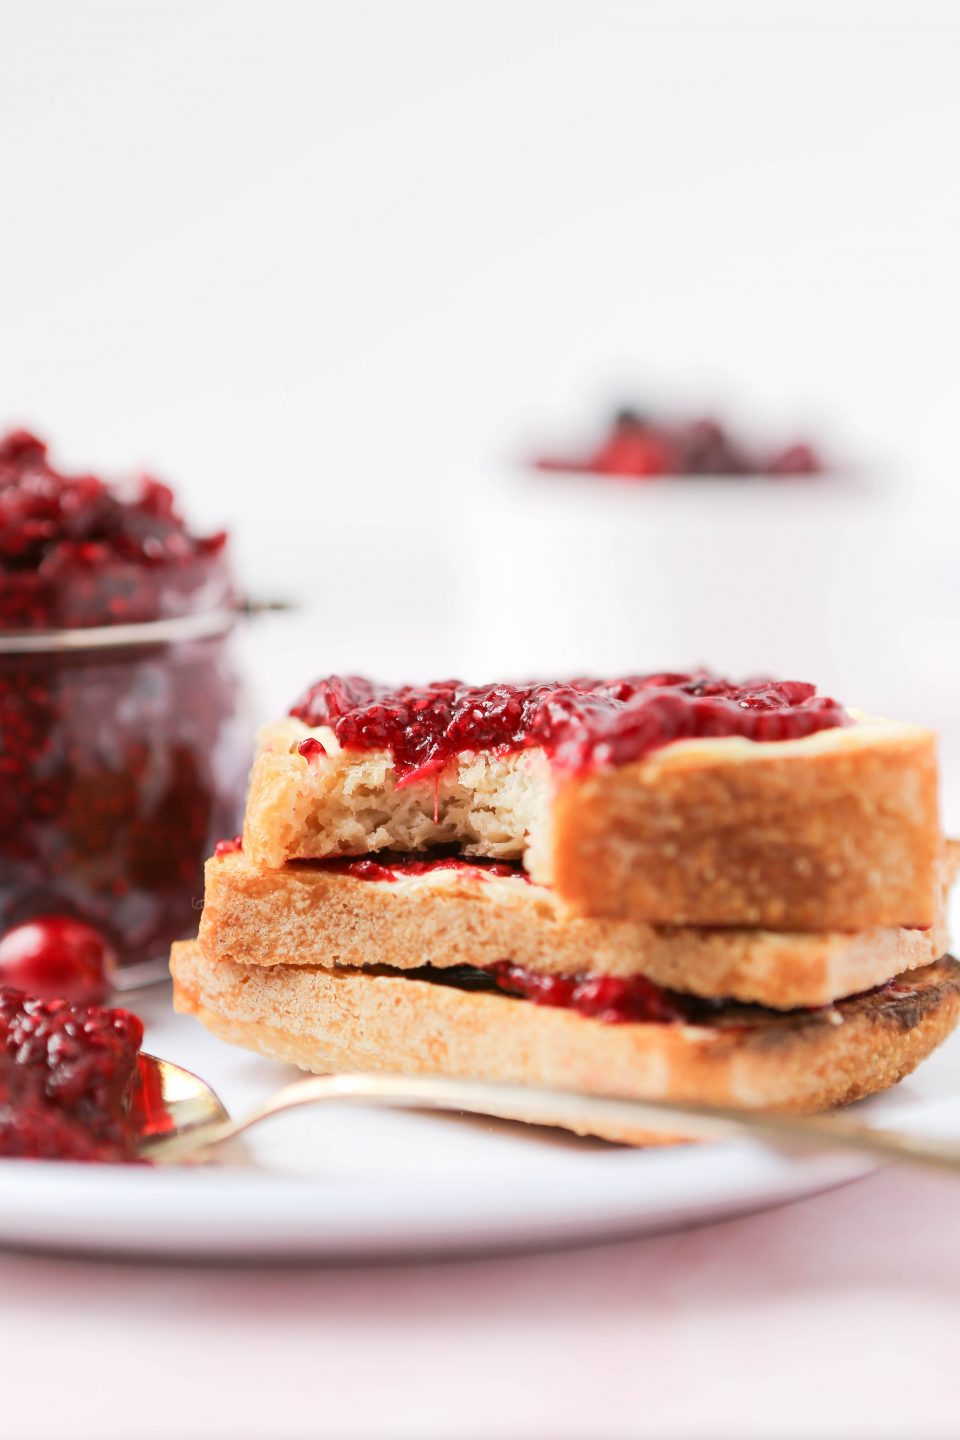 A plate of three pieces of gluten-free sourdough bread layered with butter and cranberry chia seed jam. There is a spoonful of the jam in the forefront and a bowl of cranberries in the background.